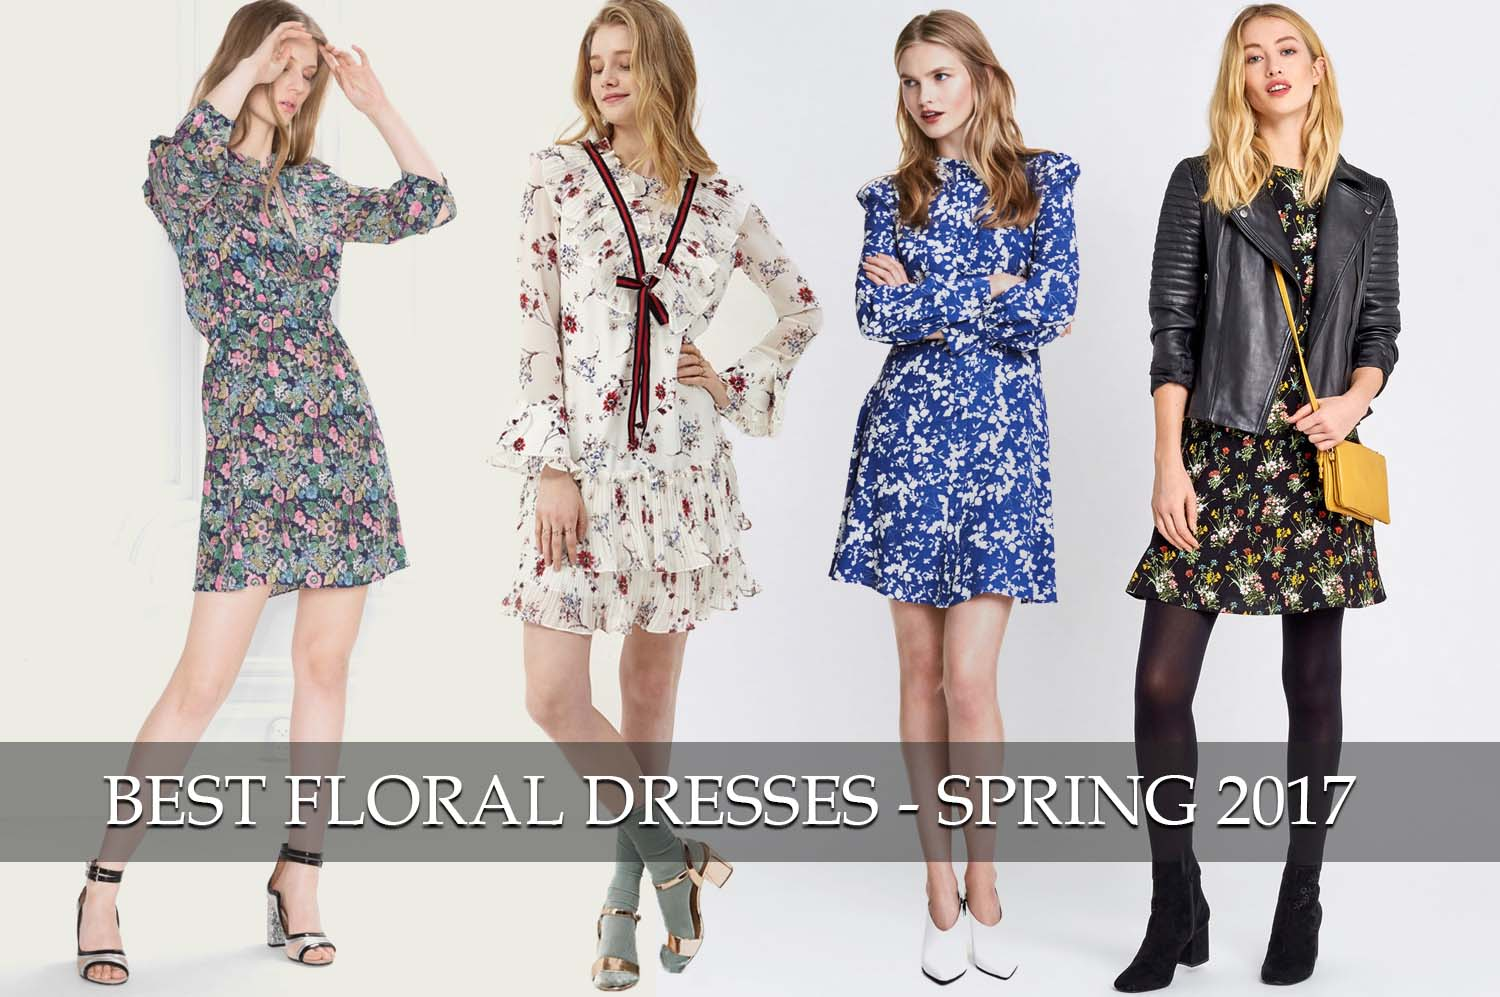 Mar 22,  · There are so many lovely dresses out this season that come in a variety of floral patterns. We curated a list of our favorite options at a wide variety of price points. These designs are ideal for occasions, everyday, and all the other events nichapie.ml Country: San Francisco, CA.